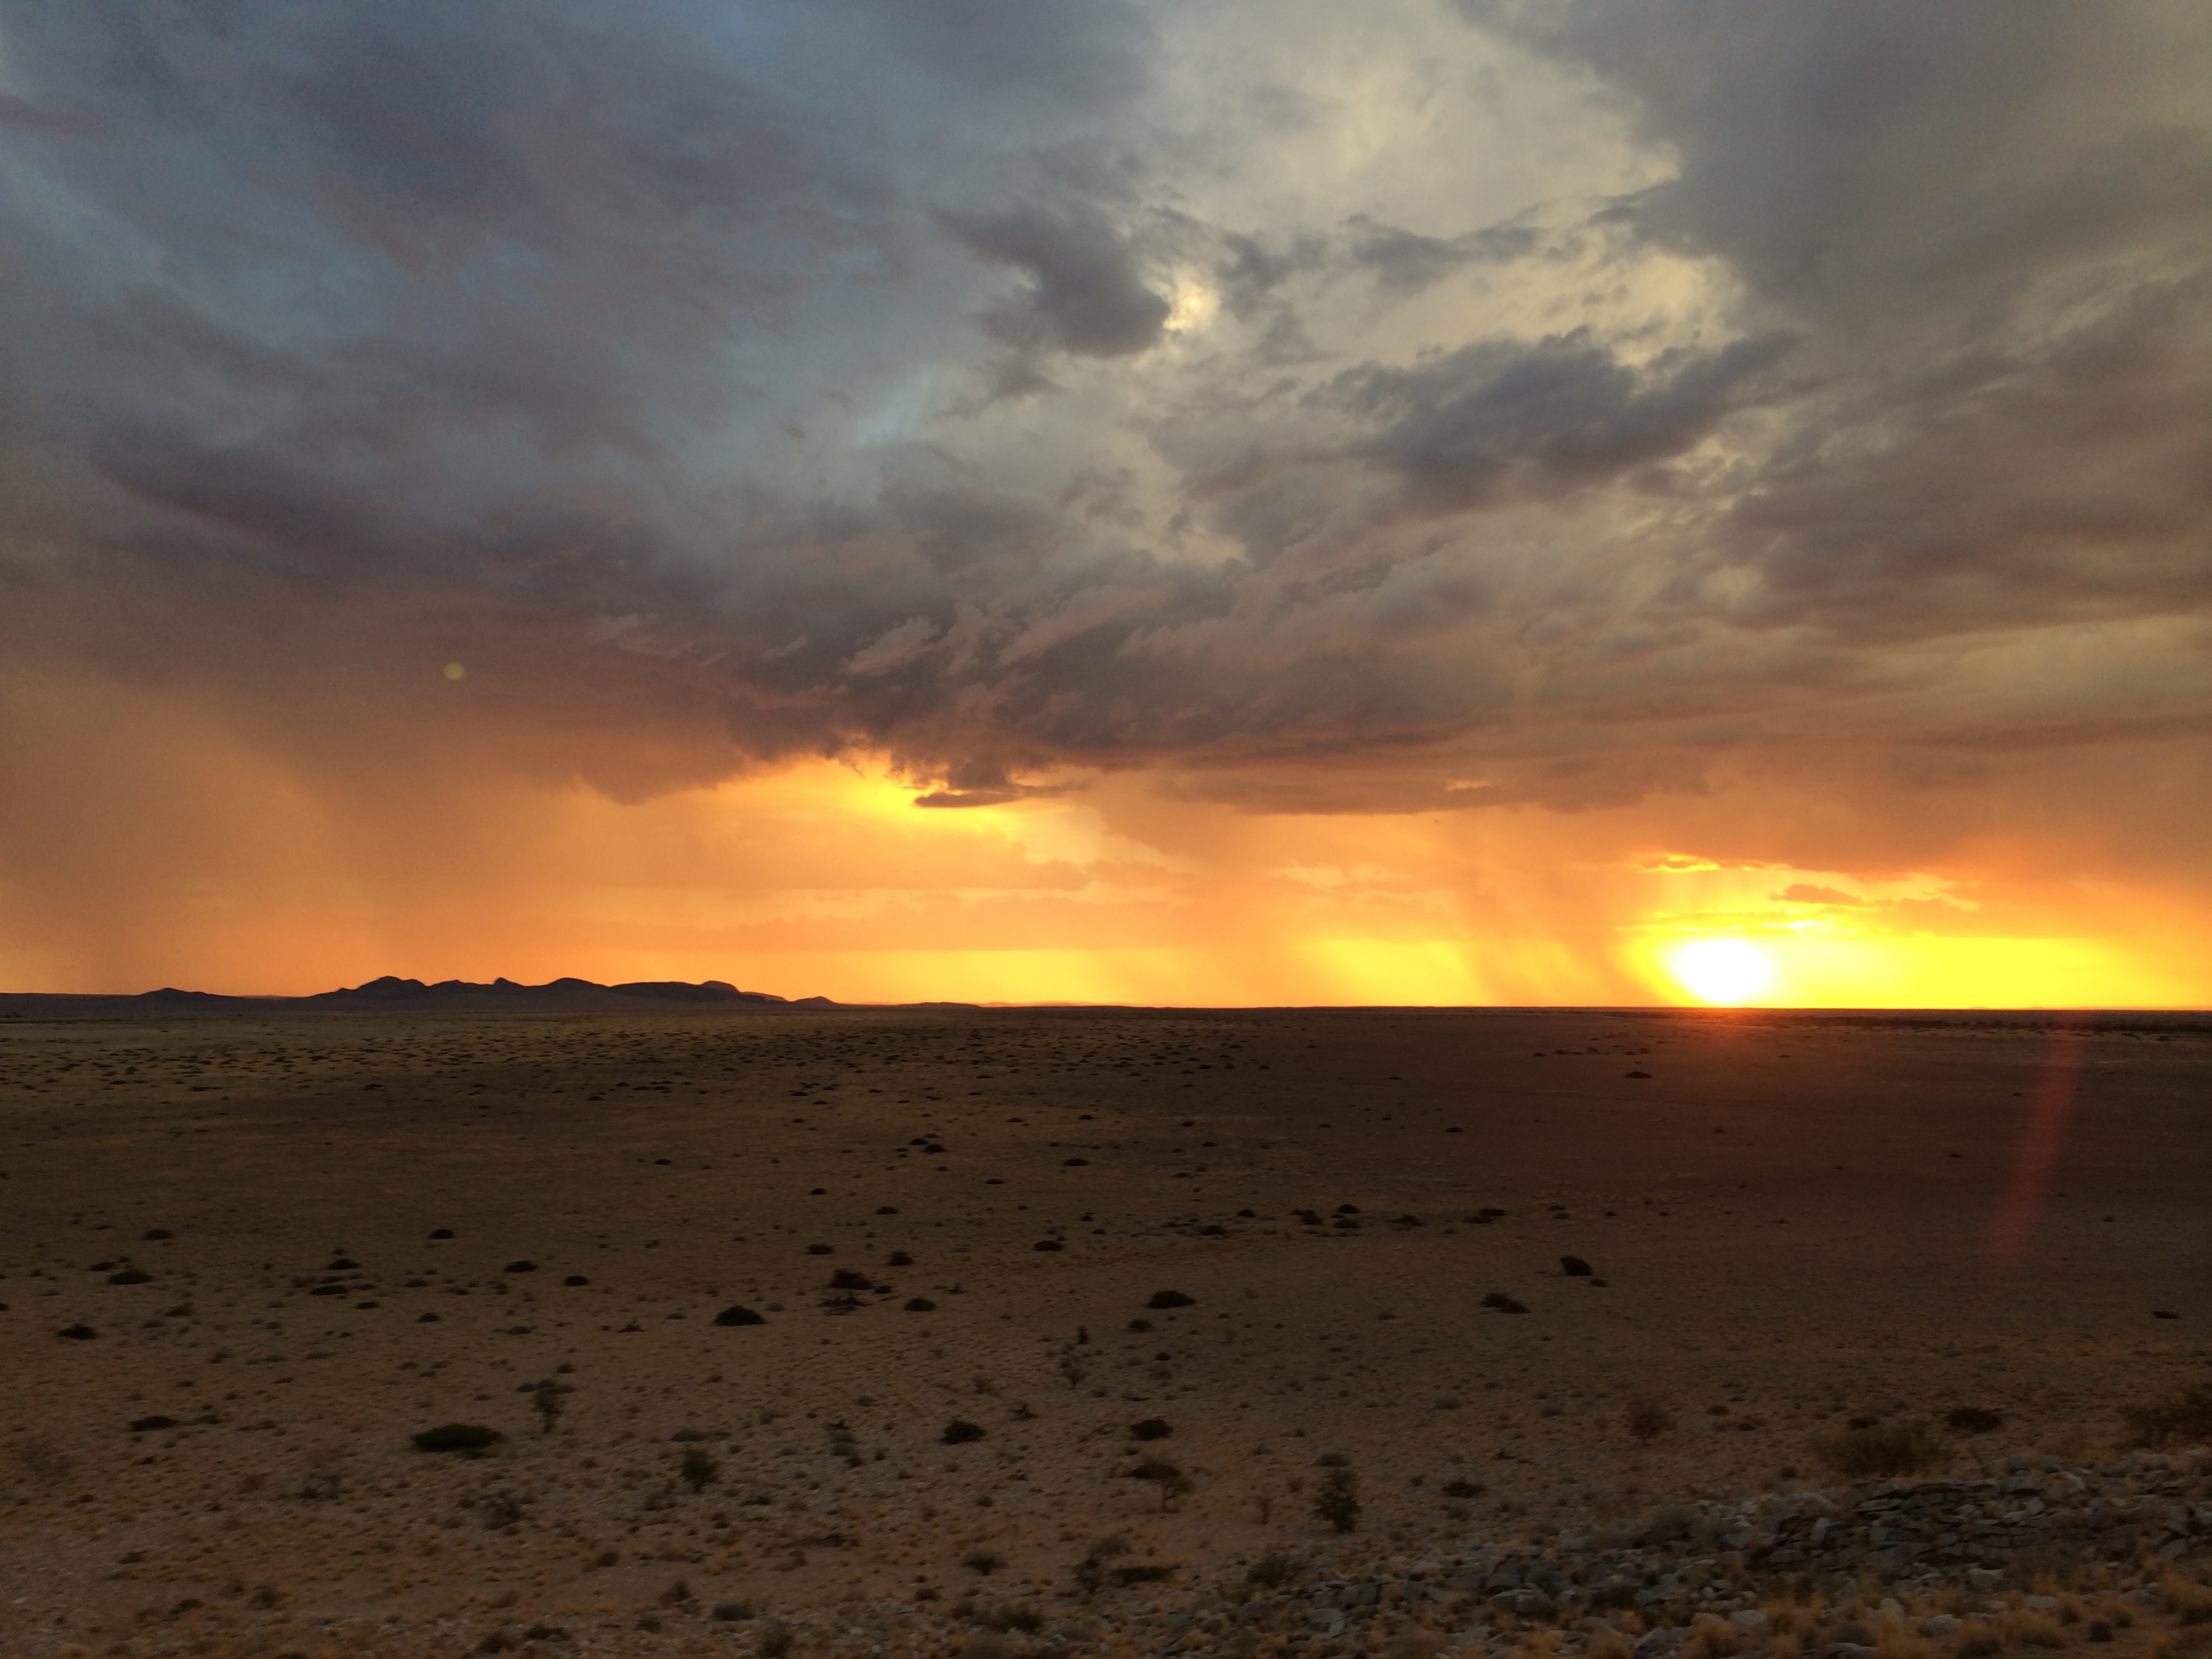 Sunset in the desert | Photo by Wilson Carletti (All Rights Reserved)